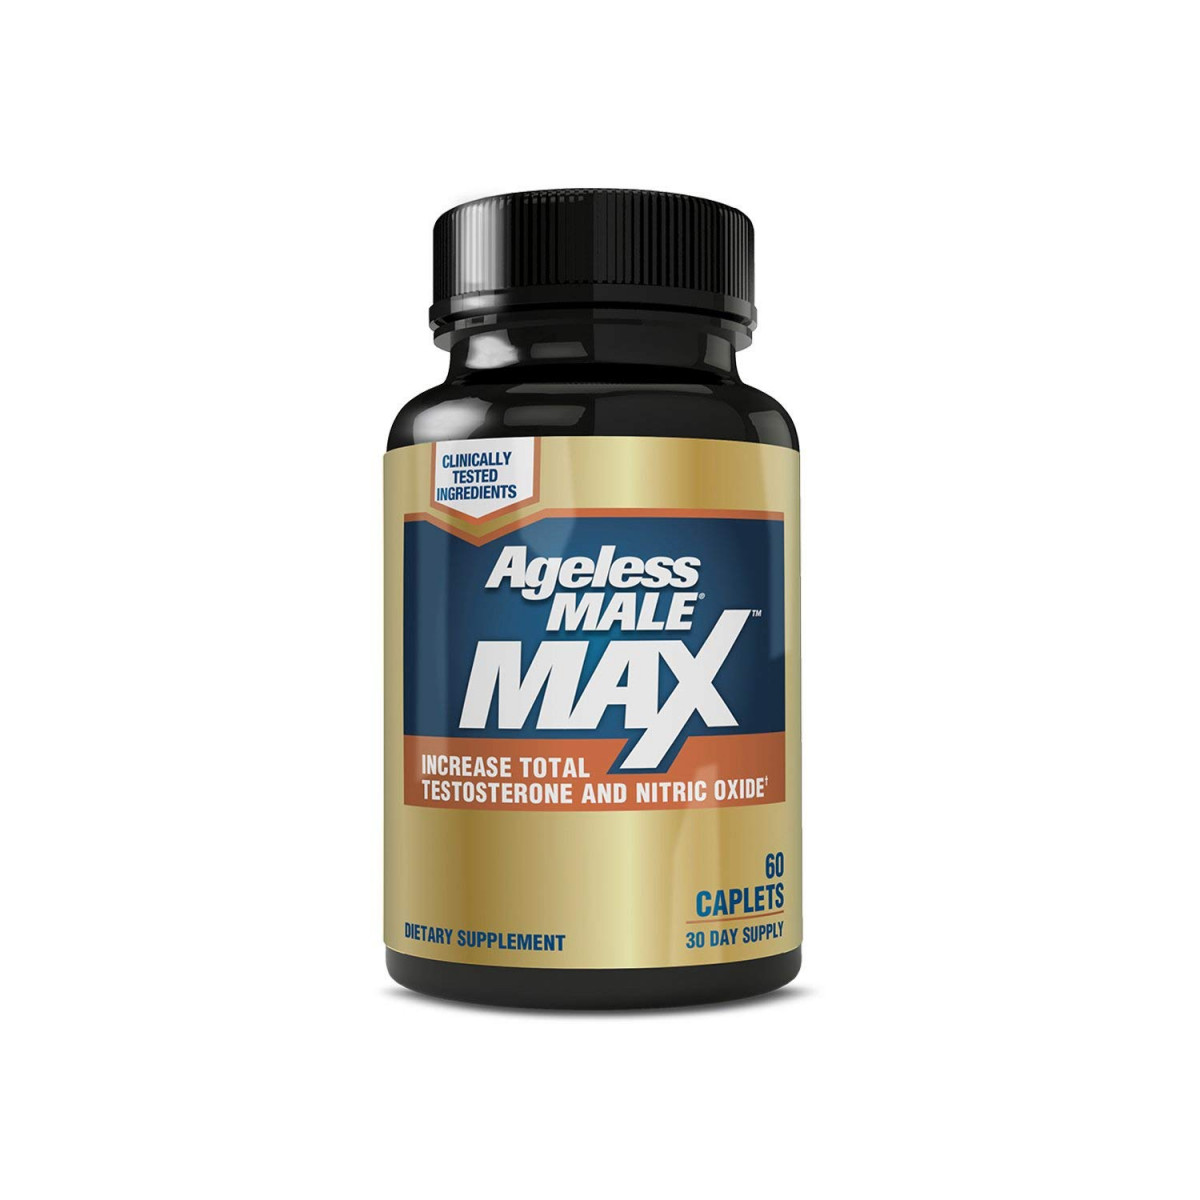 Ageless Male MAX Total Testosterone and Nitric Oxide Booster Supplement for Increasing Muscle